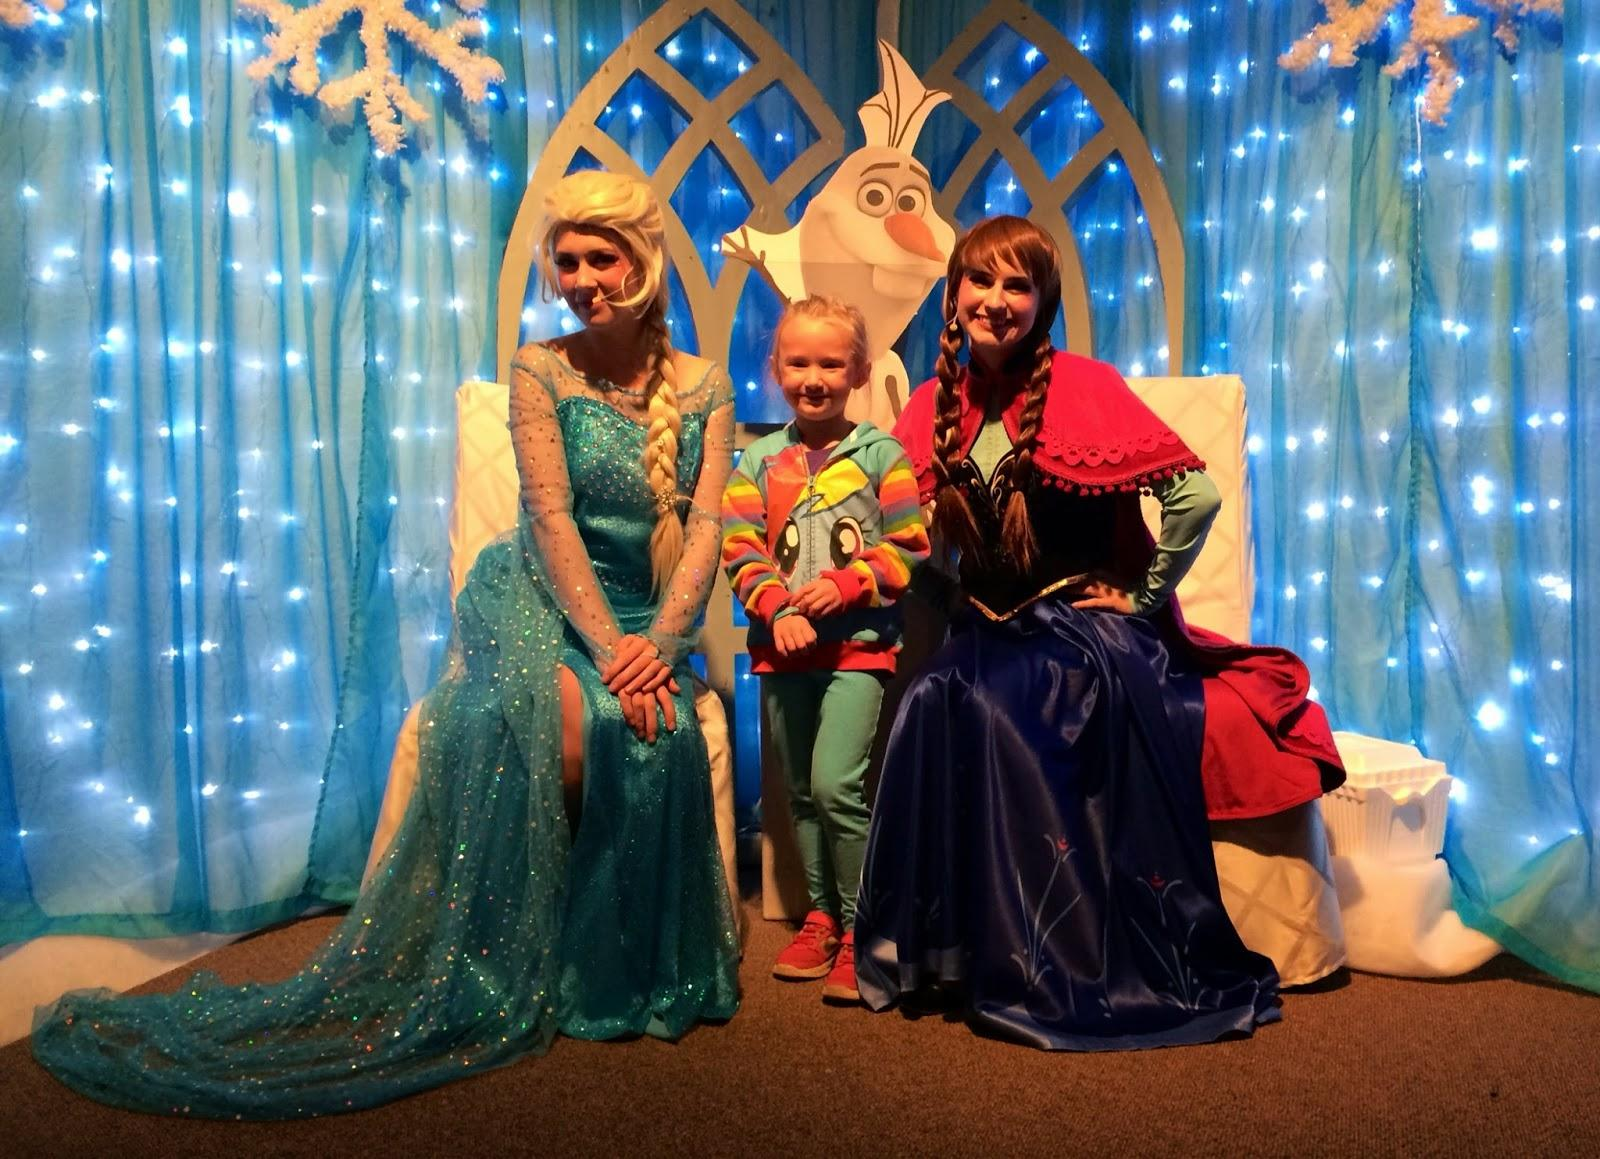 Anna elsa meet and greet tickets in snohomish wa united states anna elsa meet and greet kristyandbryce Gallery